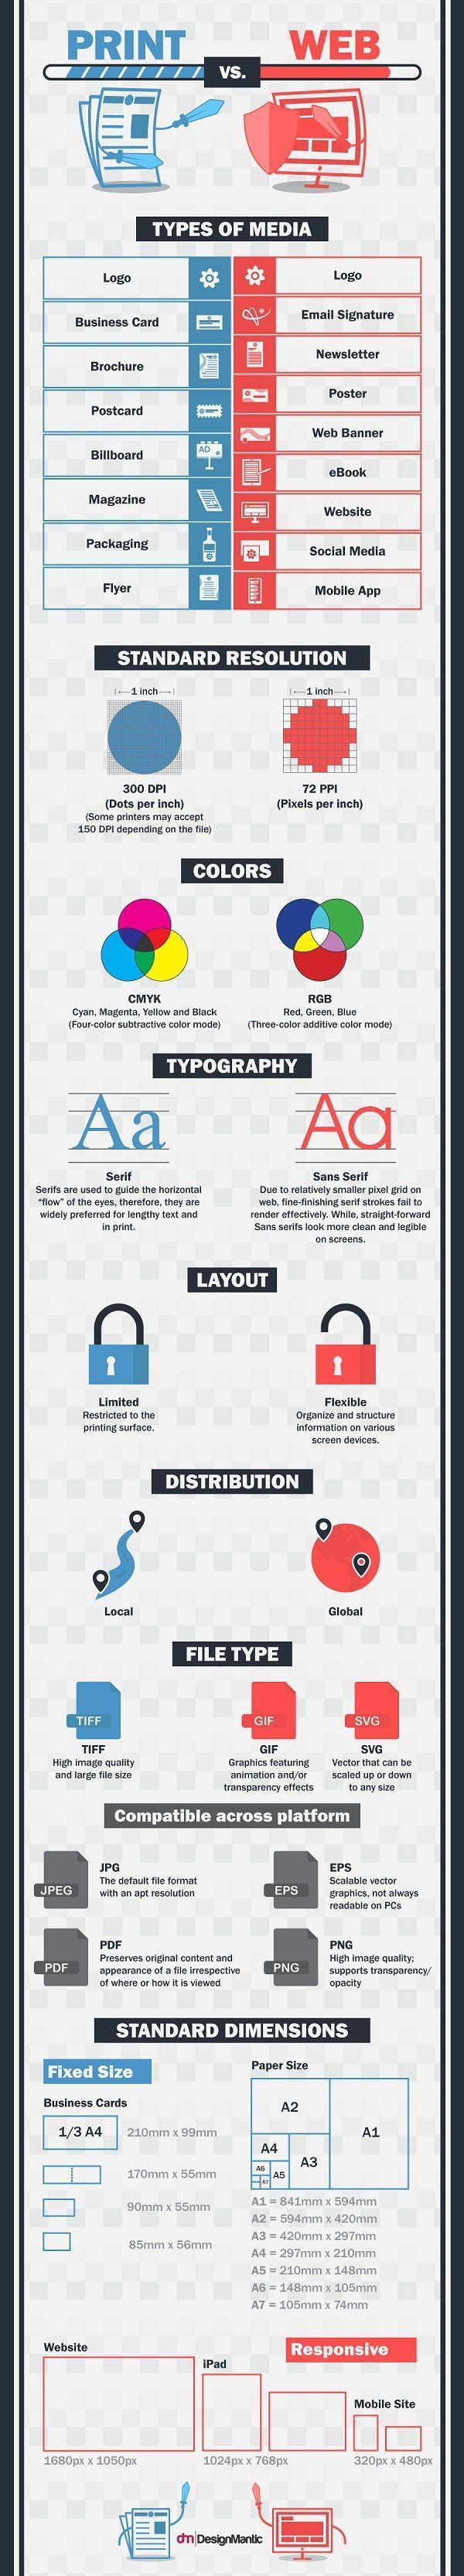 Infographic: The Differences Between Print And Web Design - DesignTAXI.com #3dprintinginfographic